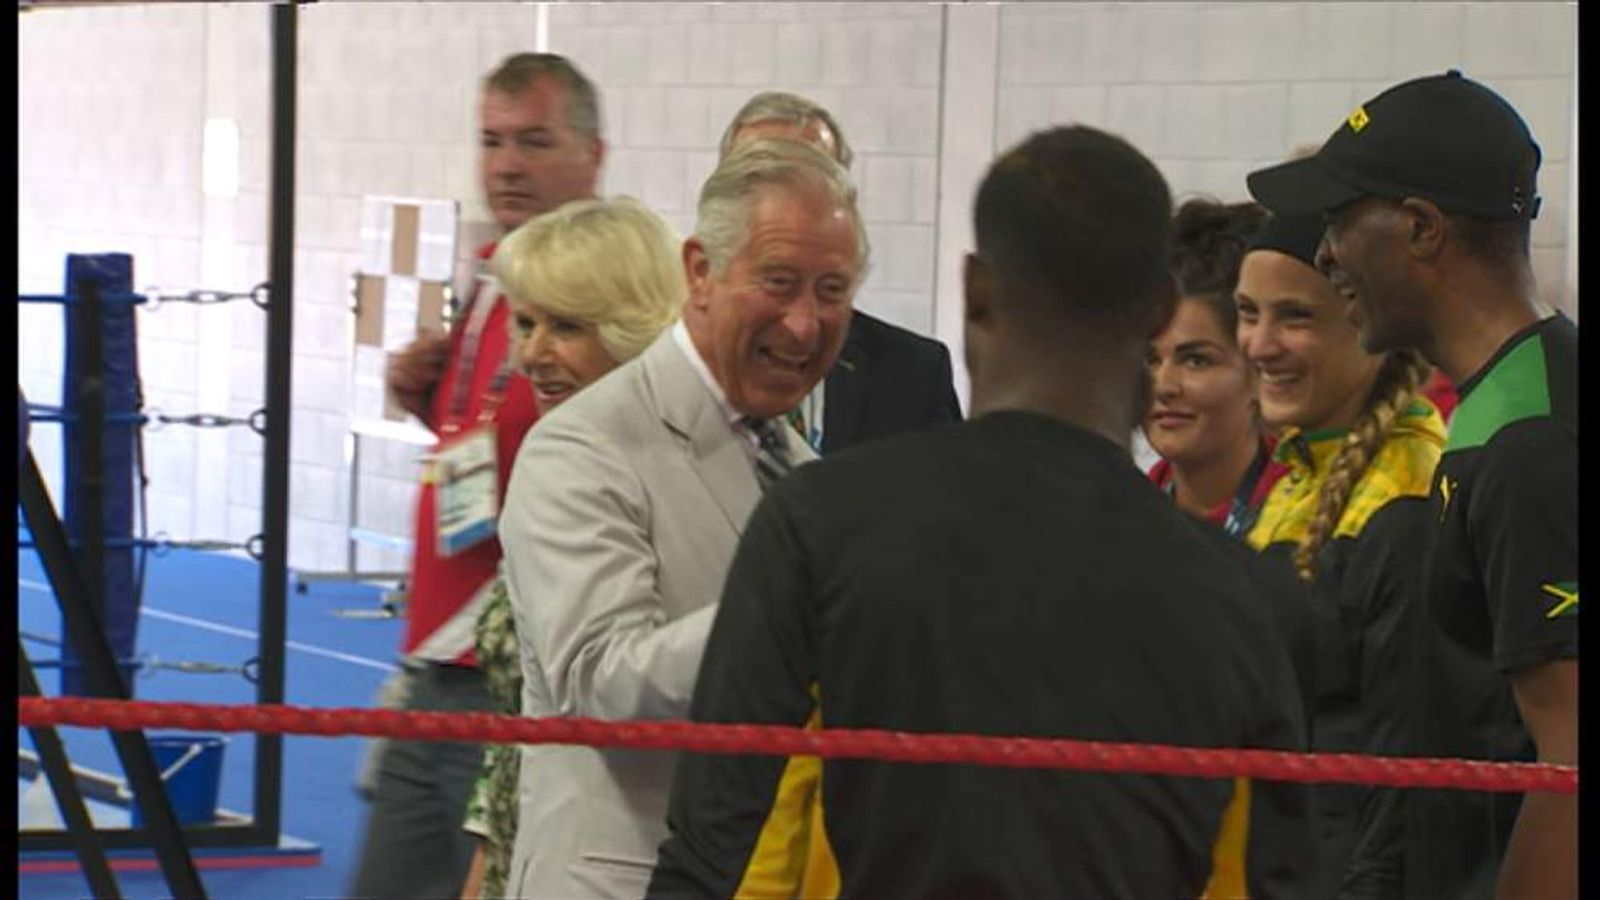 Prince Charles and the Duchess of Cornwall visit the Commonwealth Games